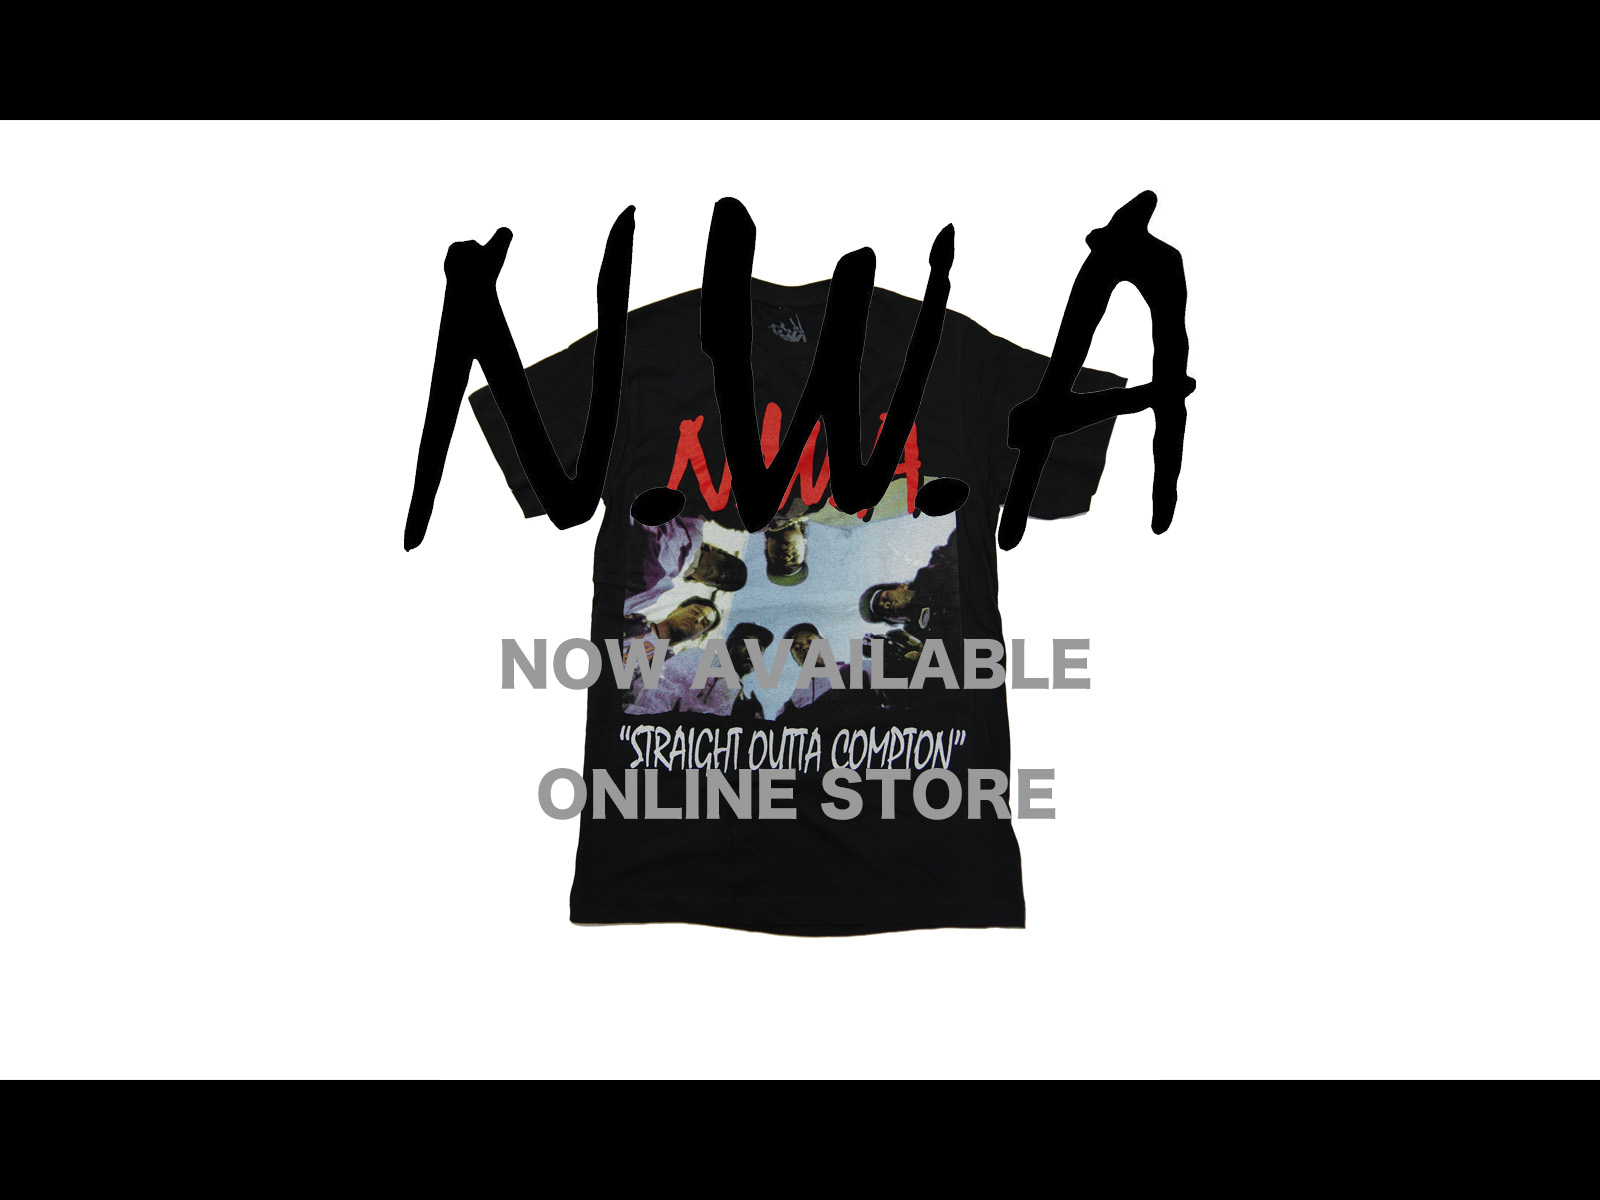 N.W.A. T-SHIRTS NOW AVAILABLE ONLINE STORE